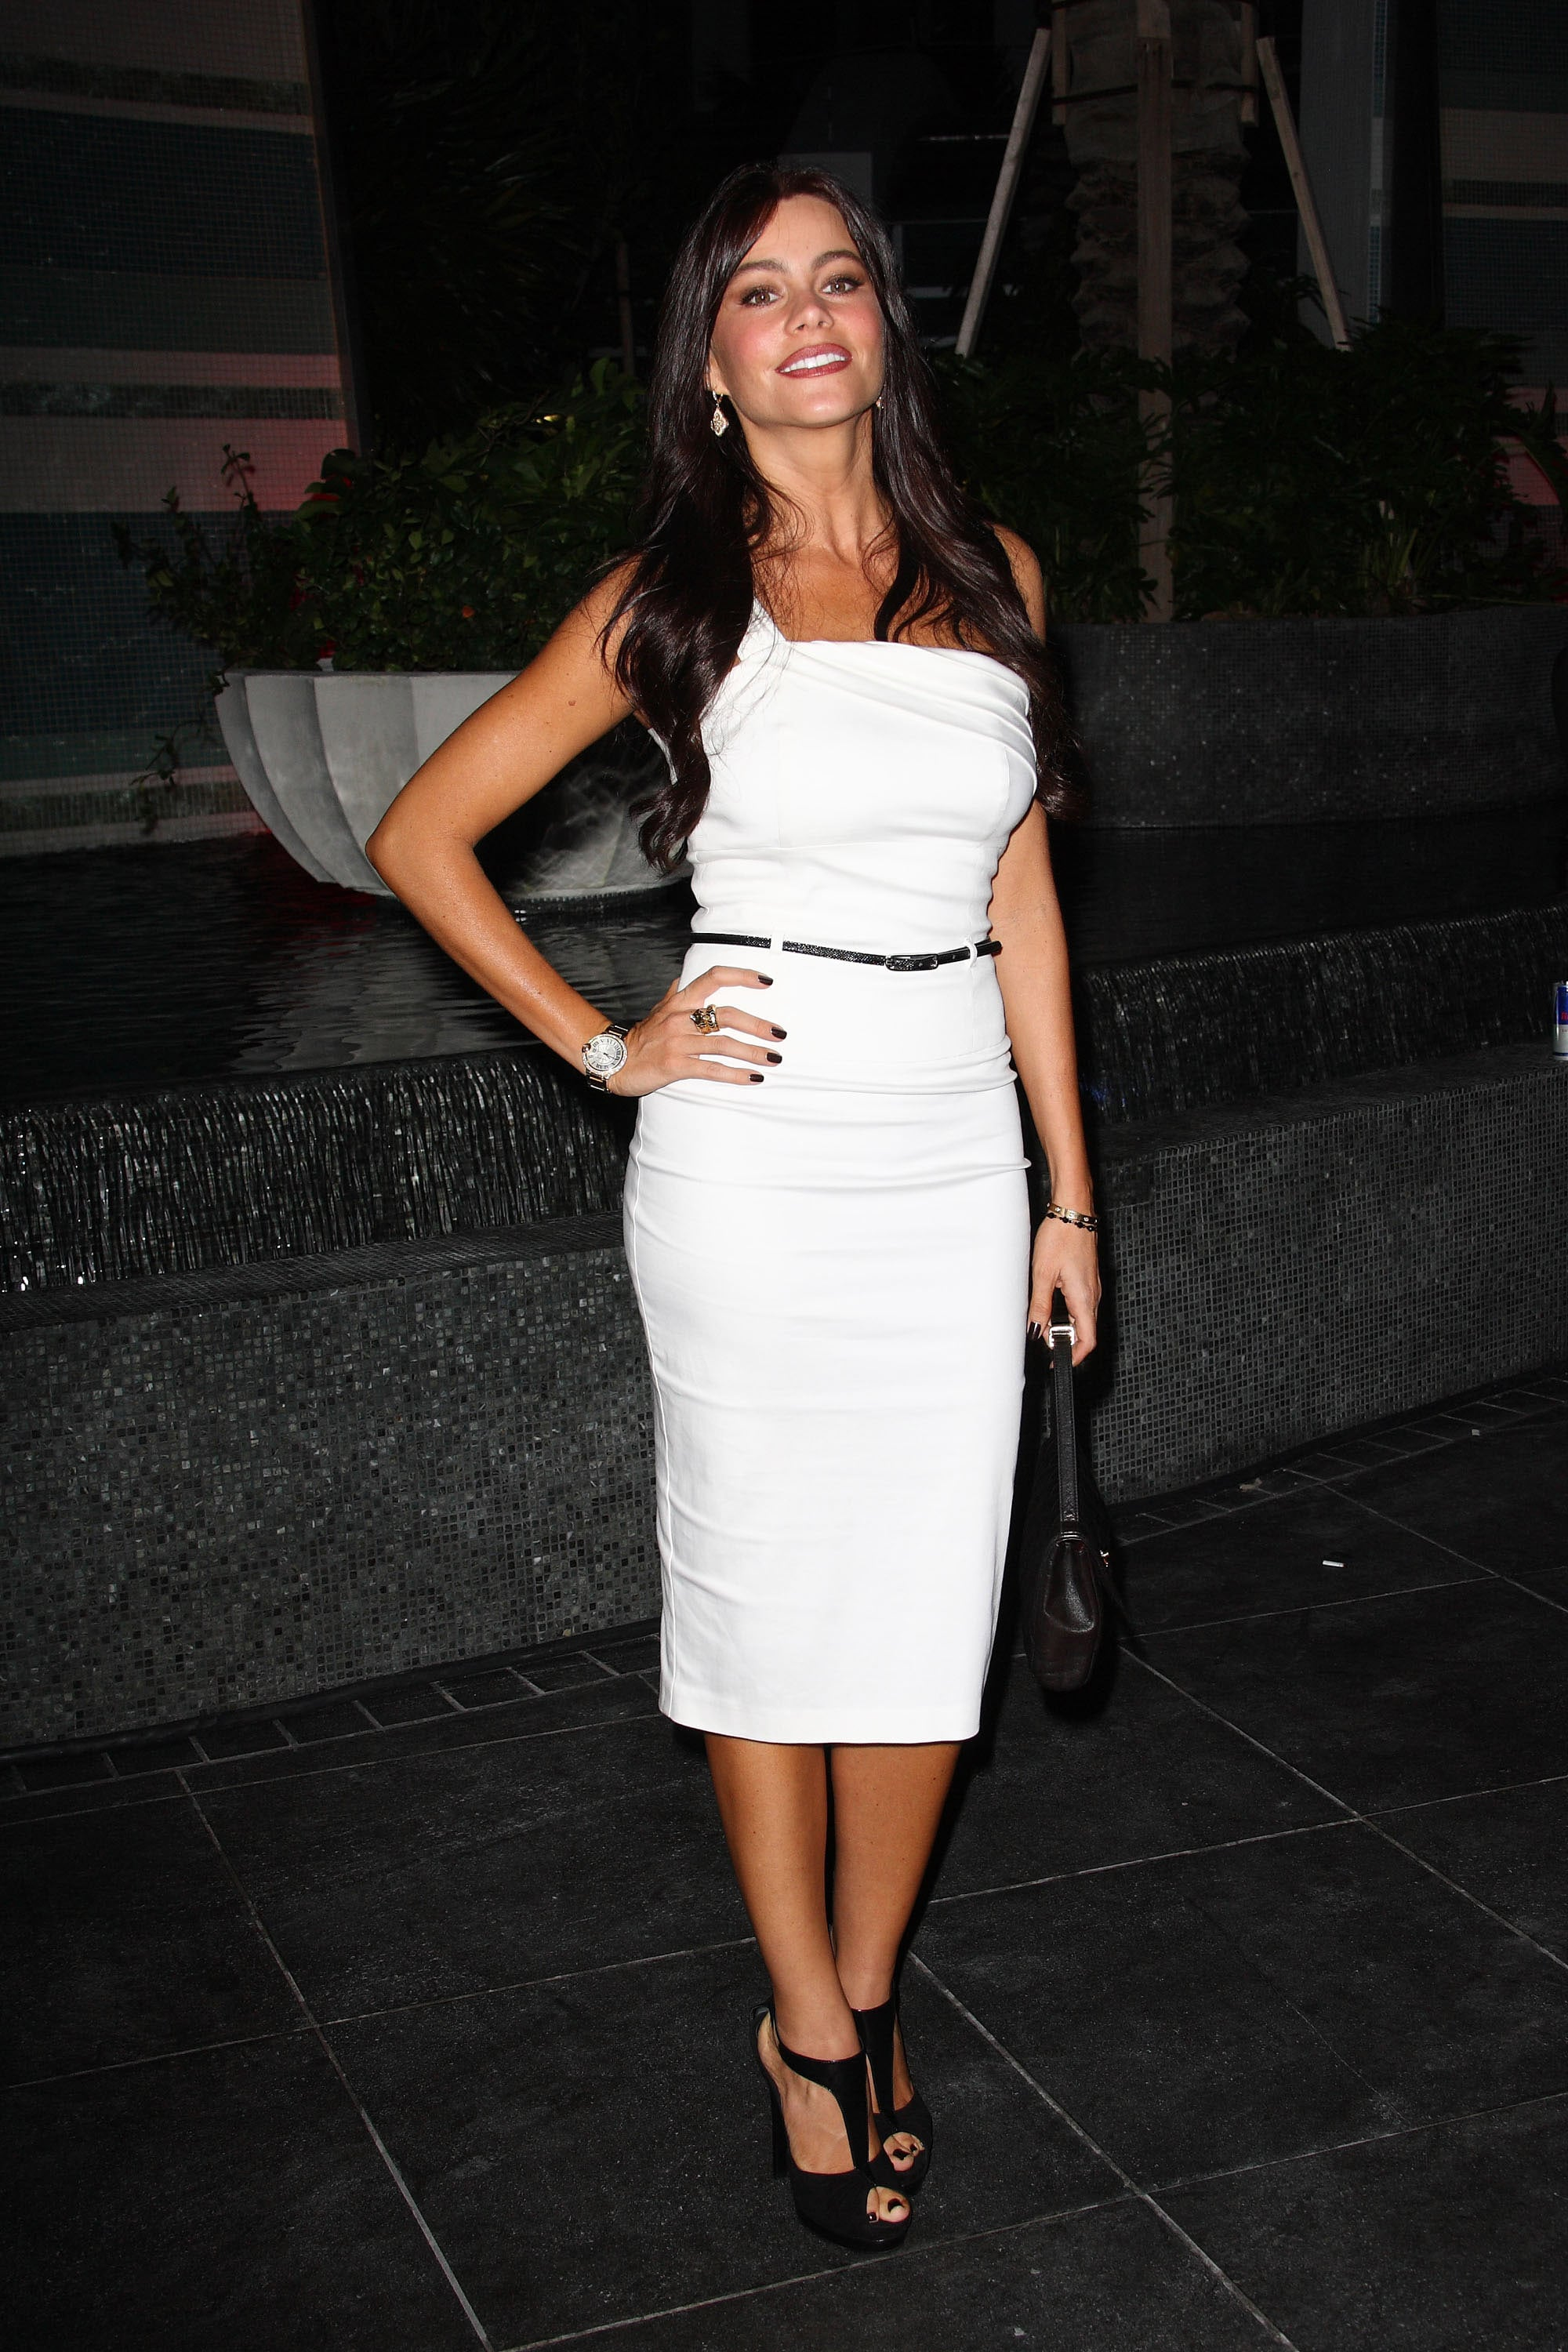 At the Fontainebleau Miami Beach grand opening, Sofia turned up the heat in a white, one-shouldered sheath dress and t-strap peep-toe pumps.